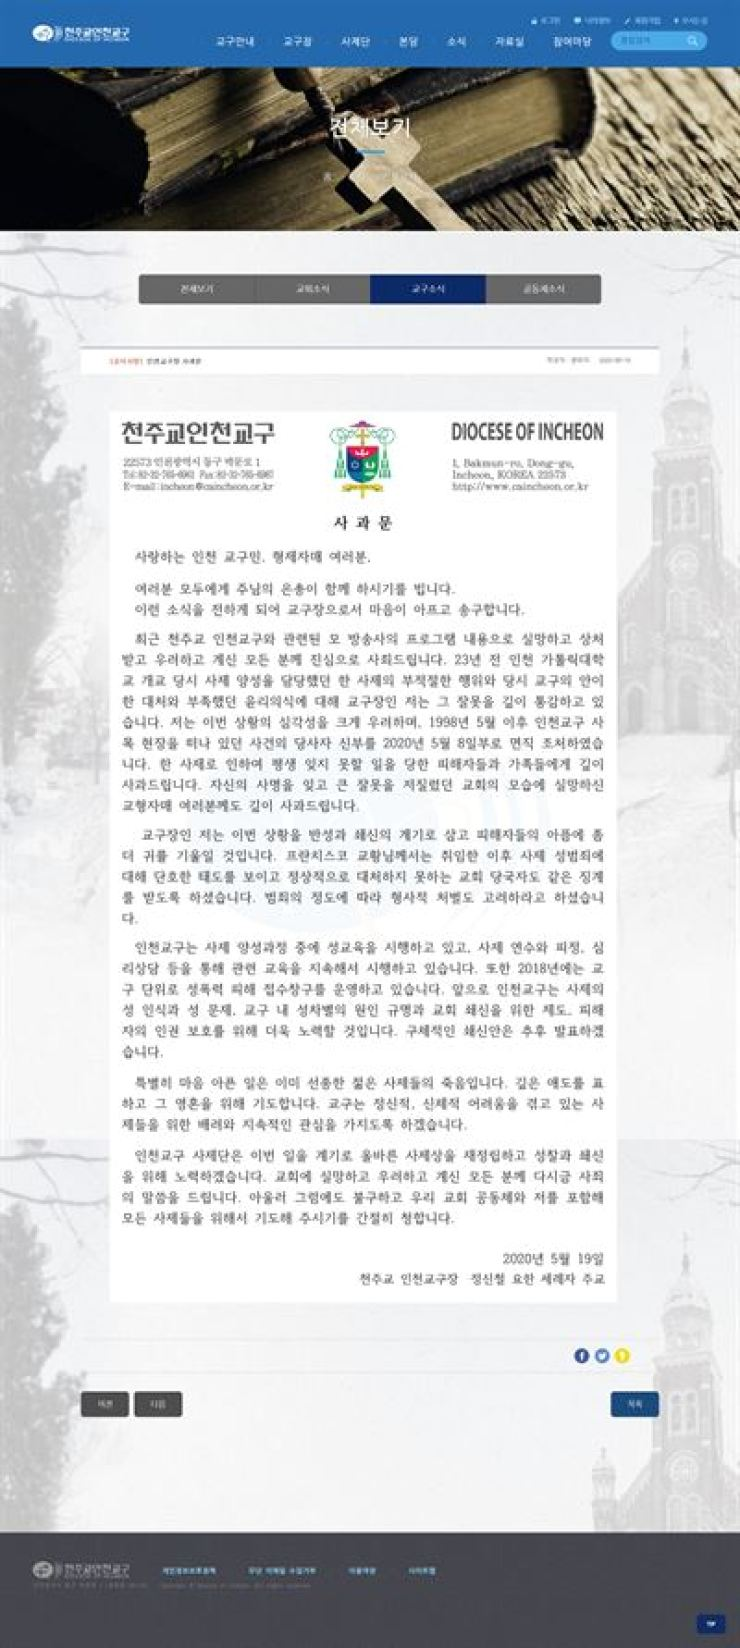 Seen is a screen captured image from the website of the Roman Catholic diocese of Incheon. Screen capture from Diocese of Incheon